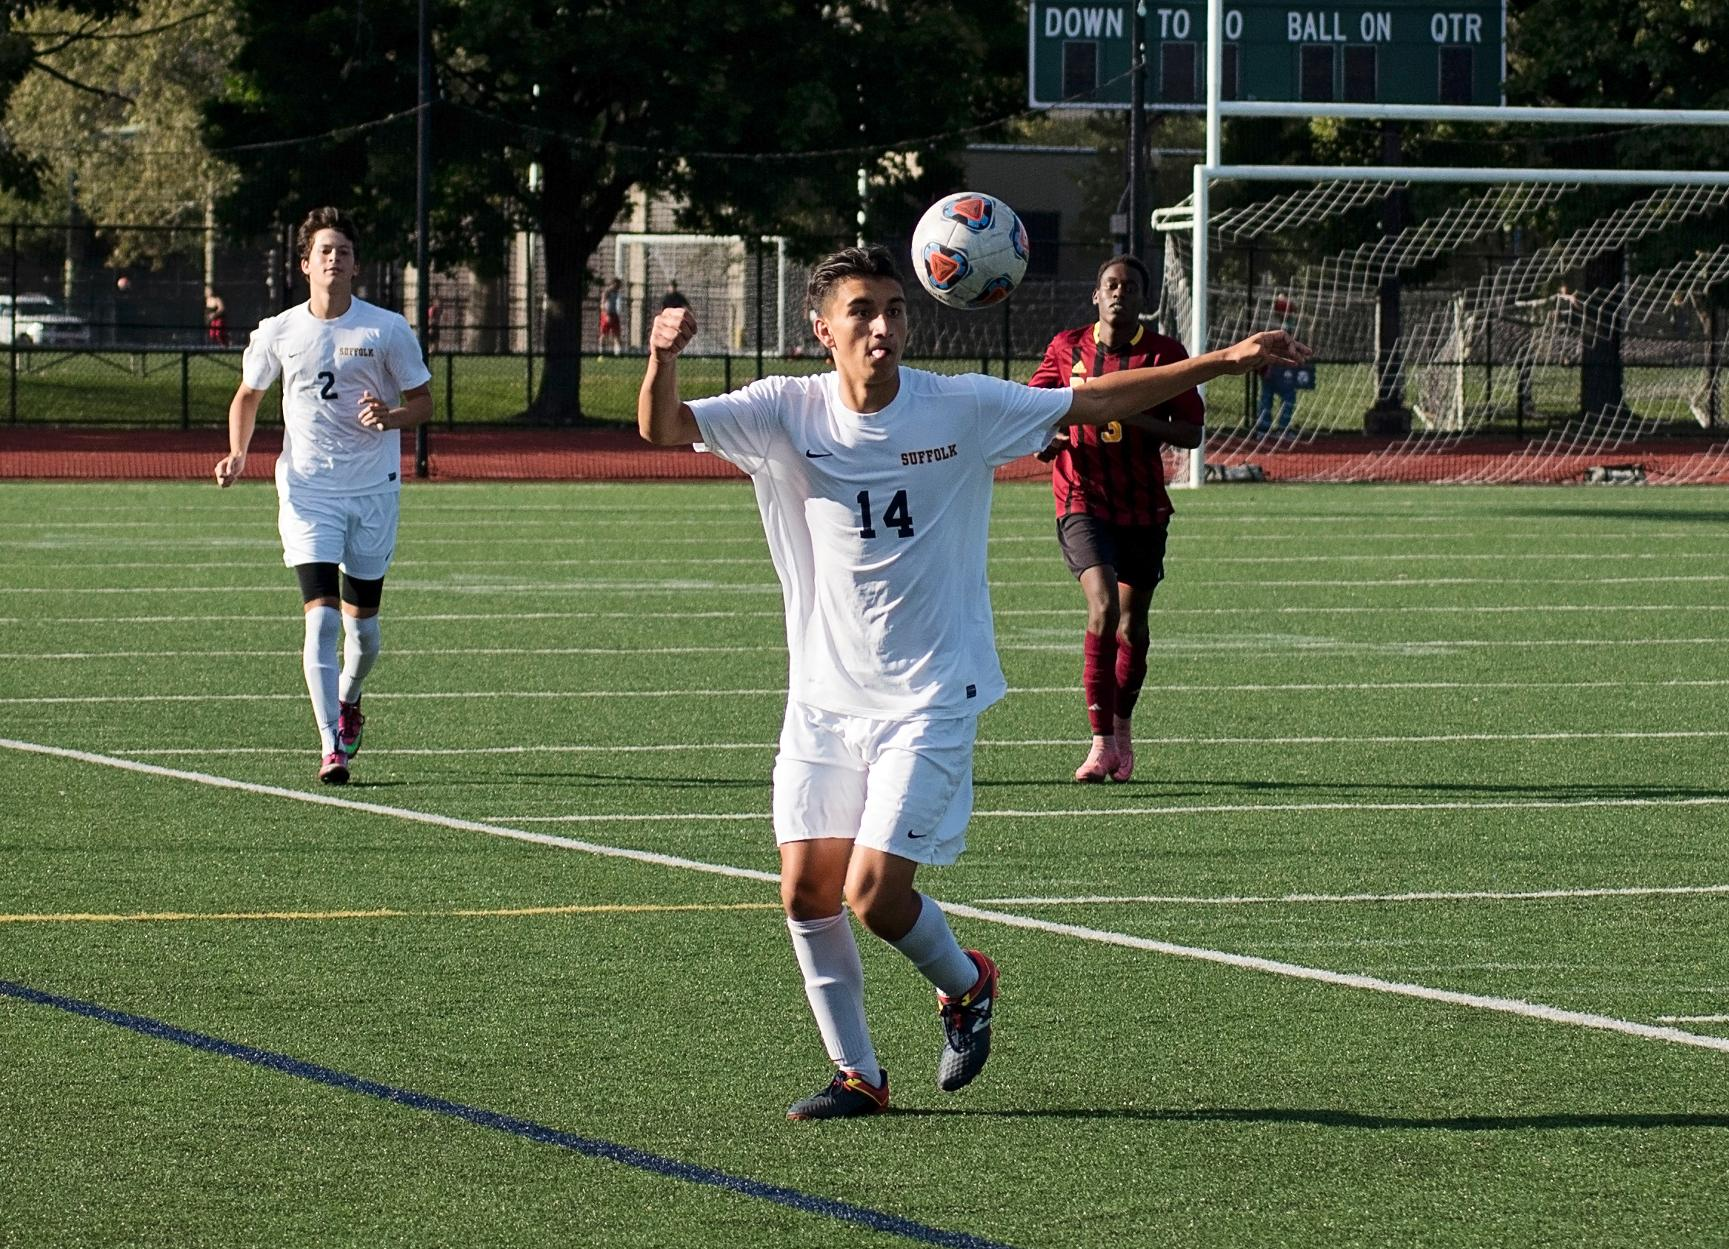 Norwich Quiets Men's Soccer, 4-0